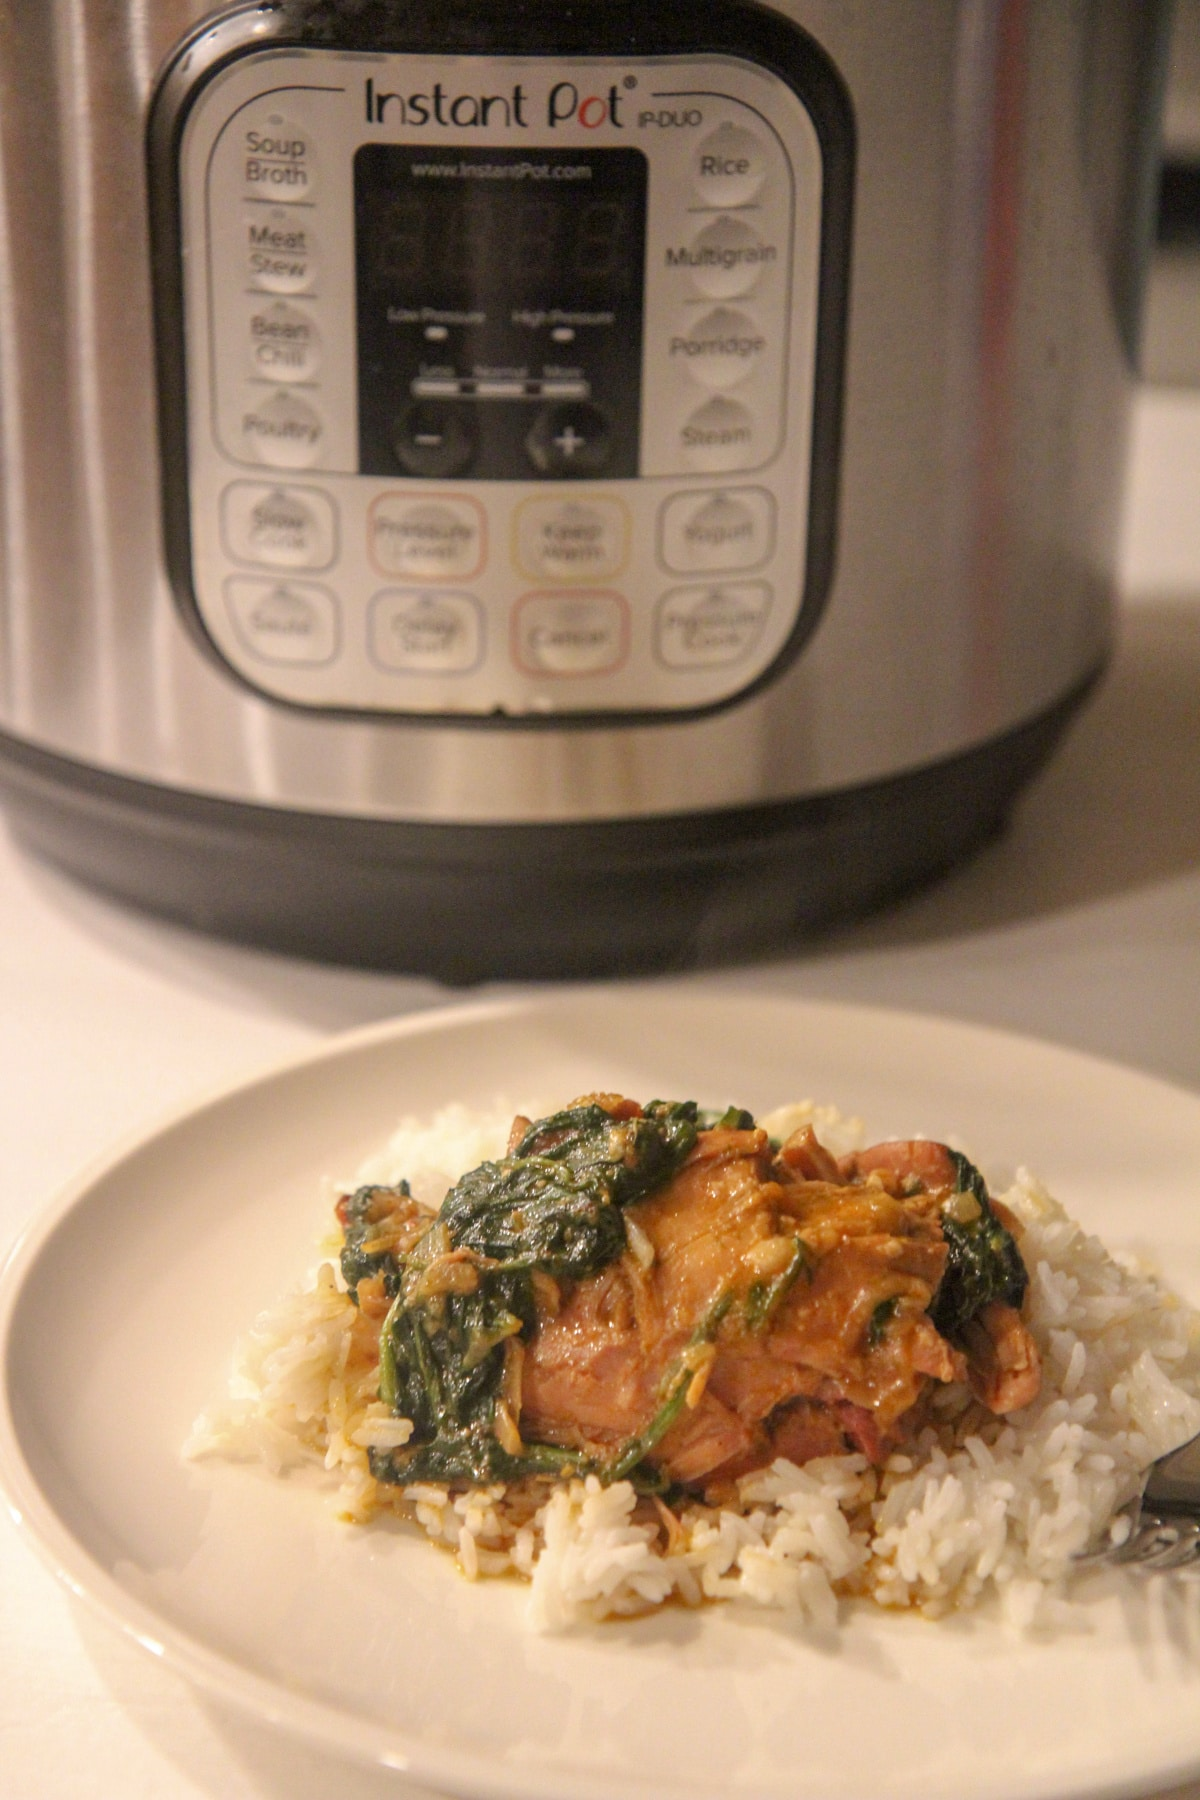 chicken curry over white rice on a white plate and an instant pot in the background.